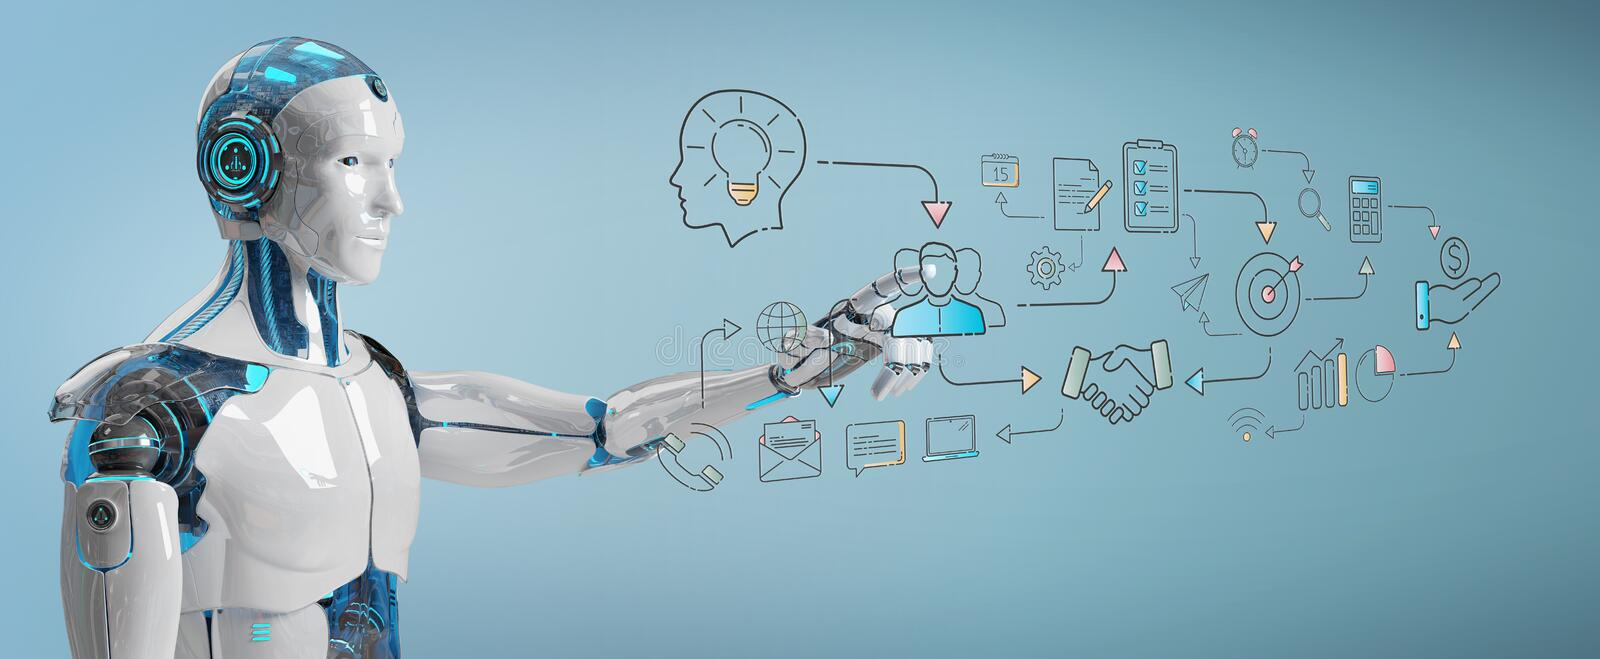 White humanoid creating artificial intelligence interface royalty free illustration